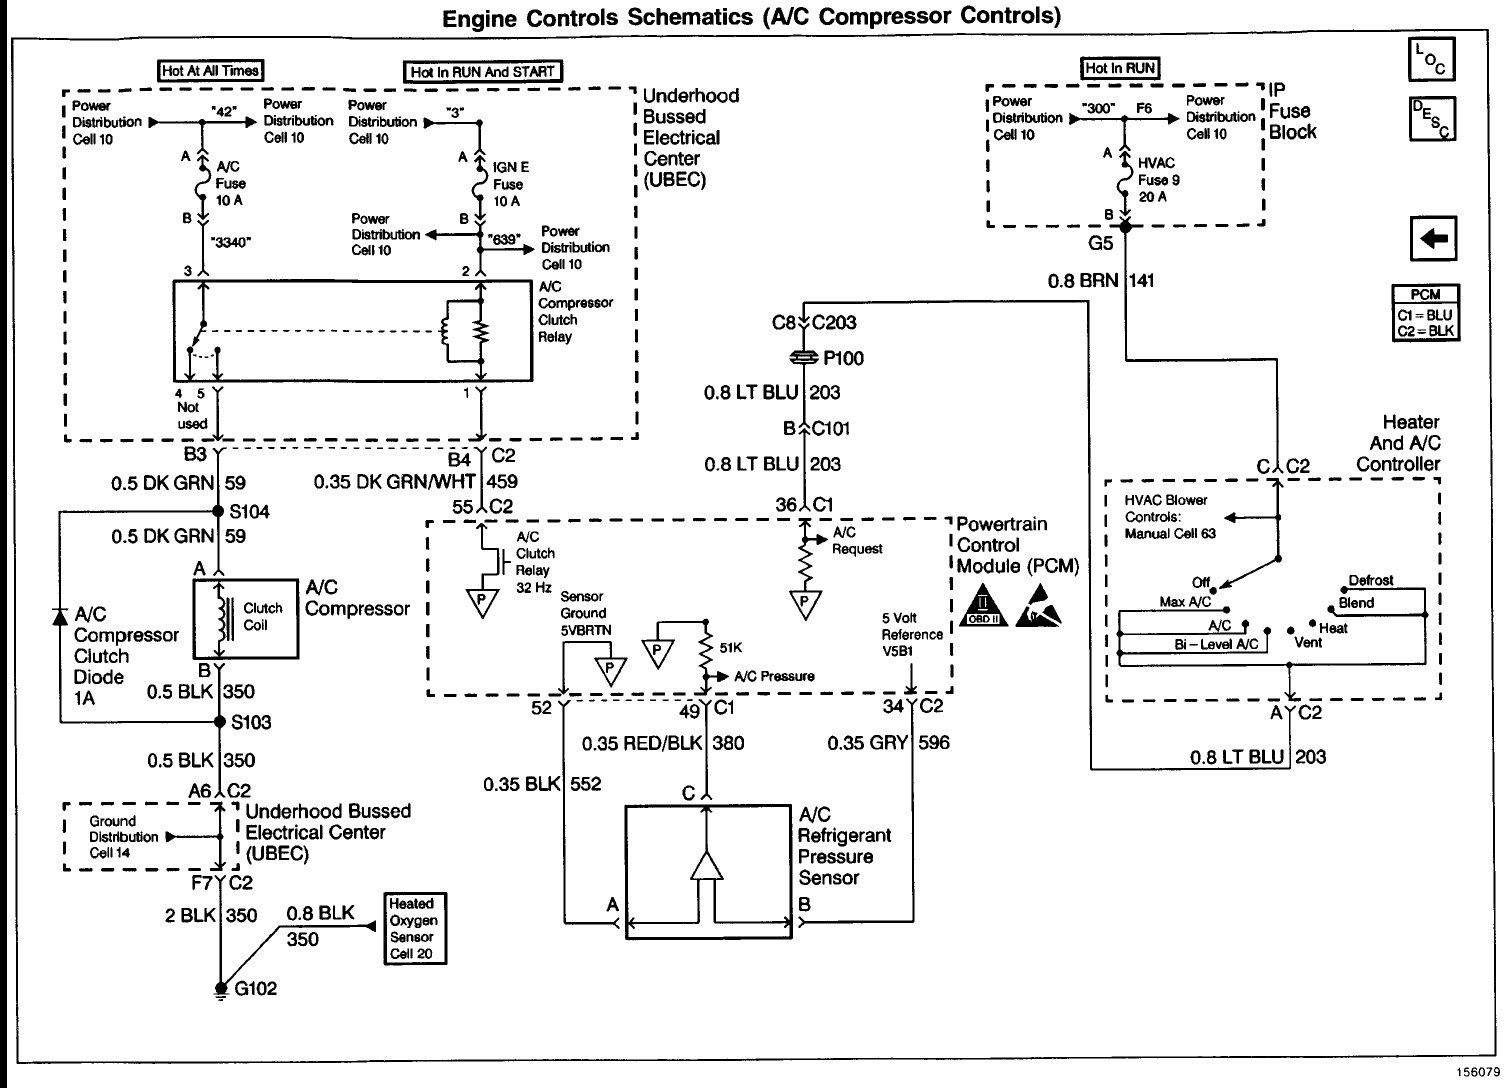 s10 pcm wiring schematic wiring diagram standards10 pcm wiring schematic wiring diagram blogs10 pcm wiring schematic [ 1504 x 1088 Pixel ]